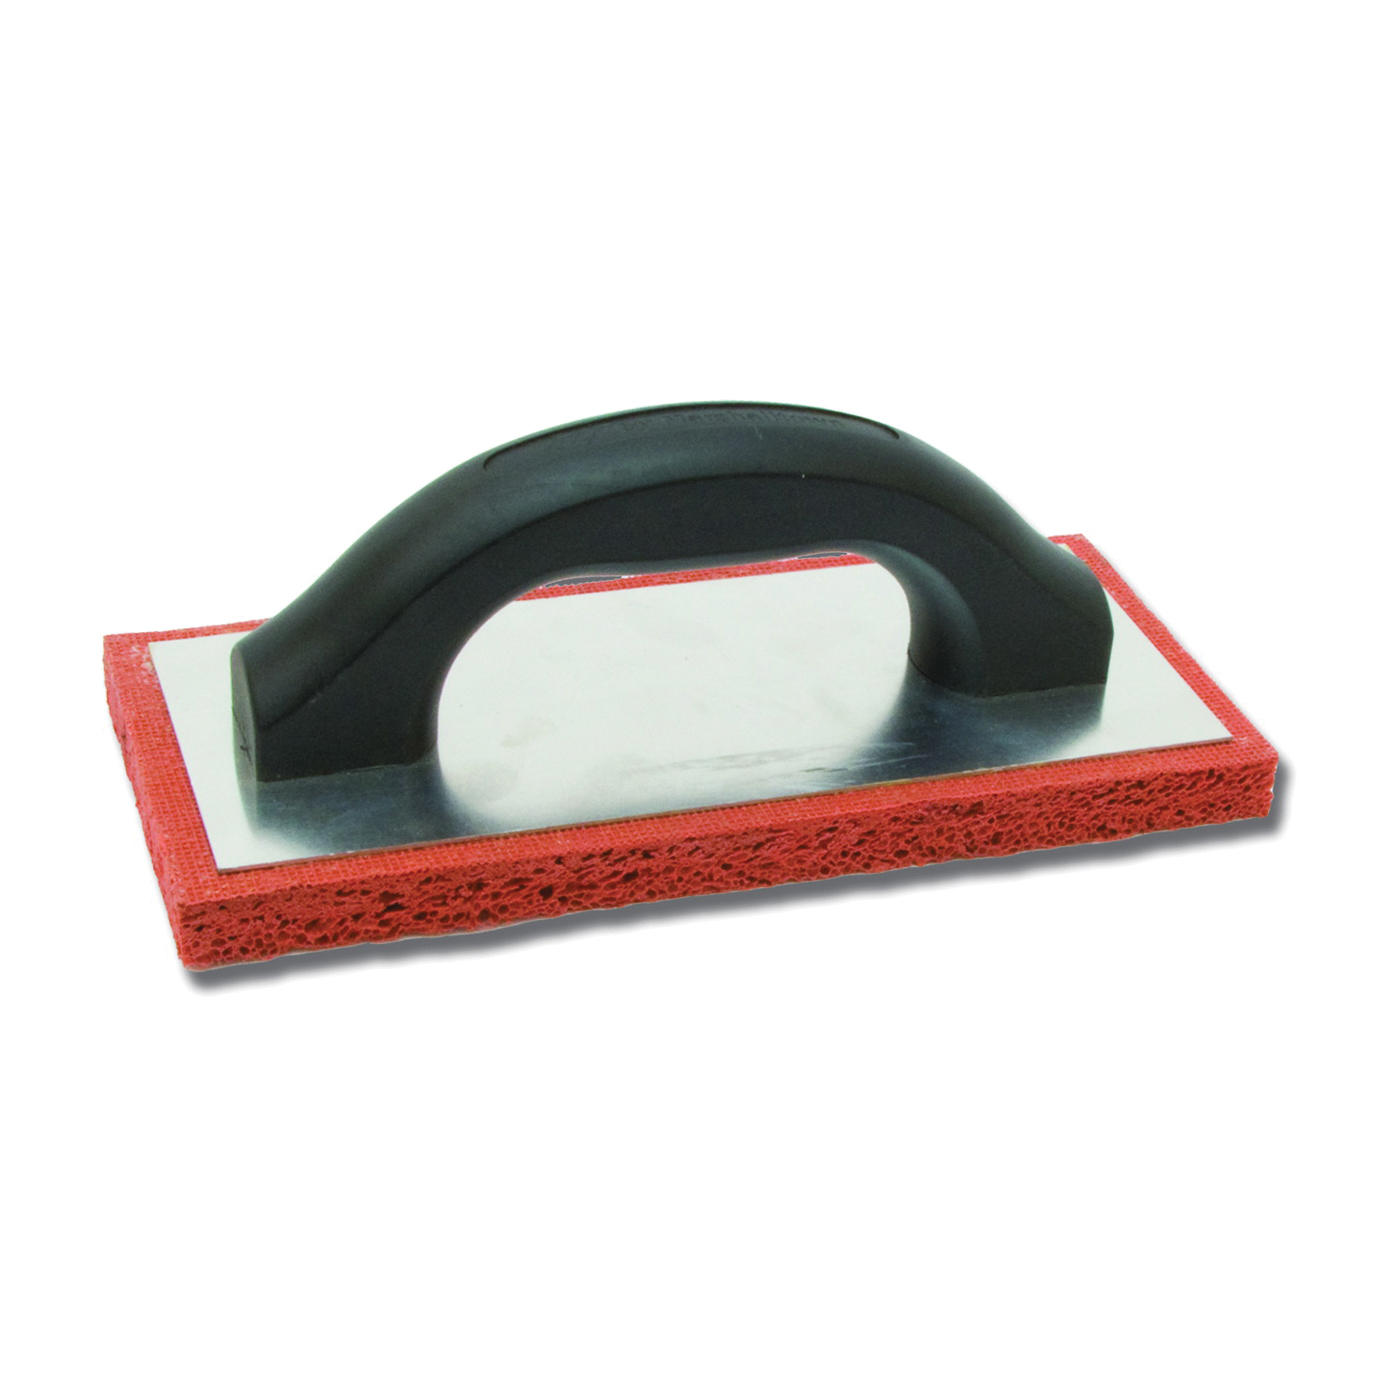 Picture of Marshalltown RRF94C Masonry Float, 9 in L Blade, 4 in W Blade, 5/8 in Thick Blade, Coarse Rubber Blade